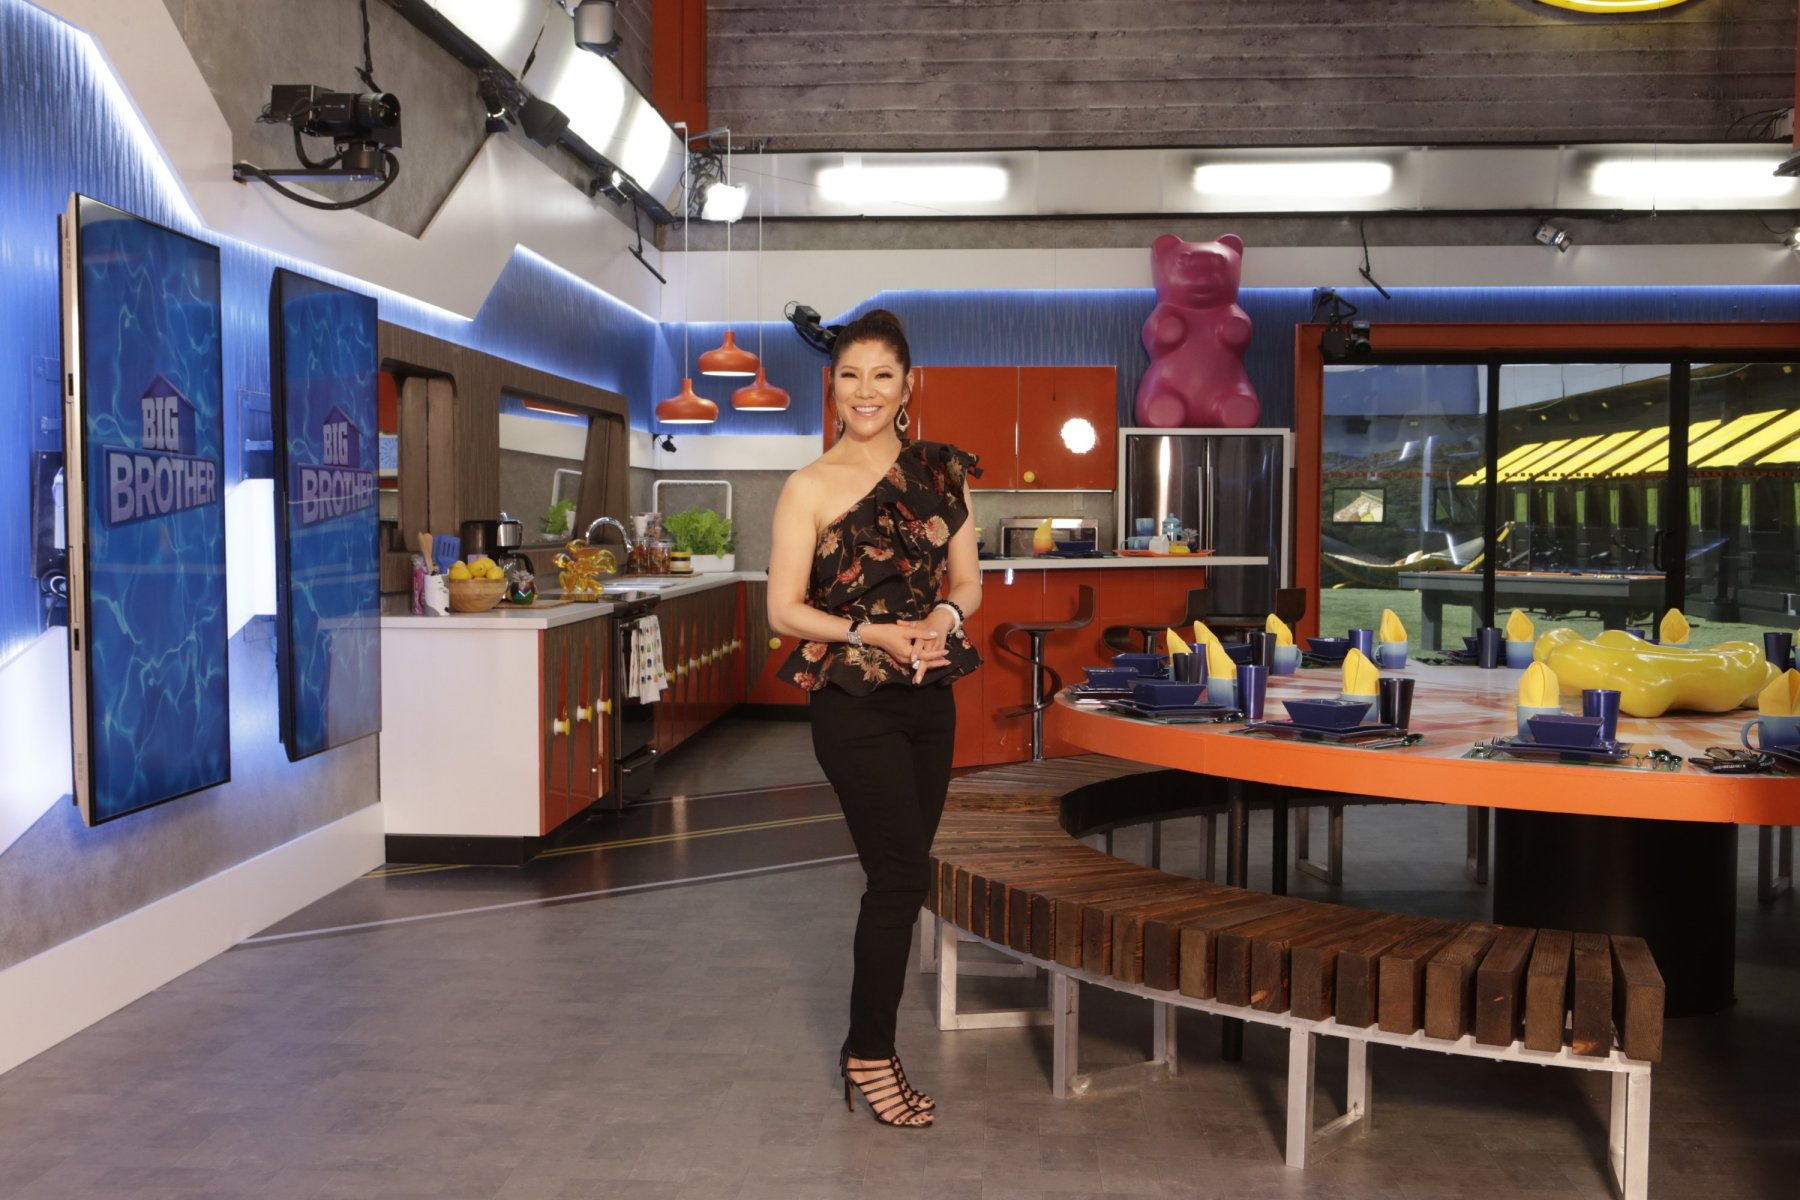 'Big Brother' Season 20 twist and house design revealed ...